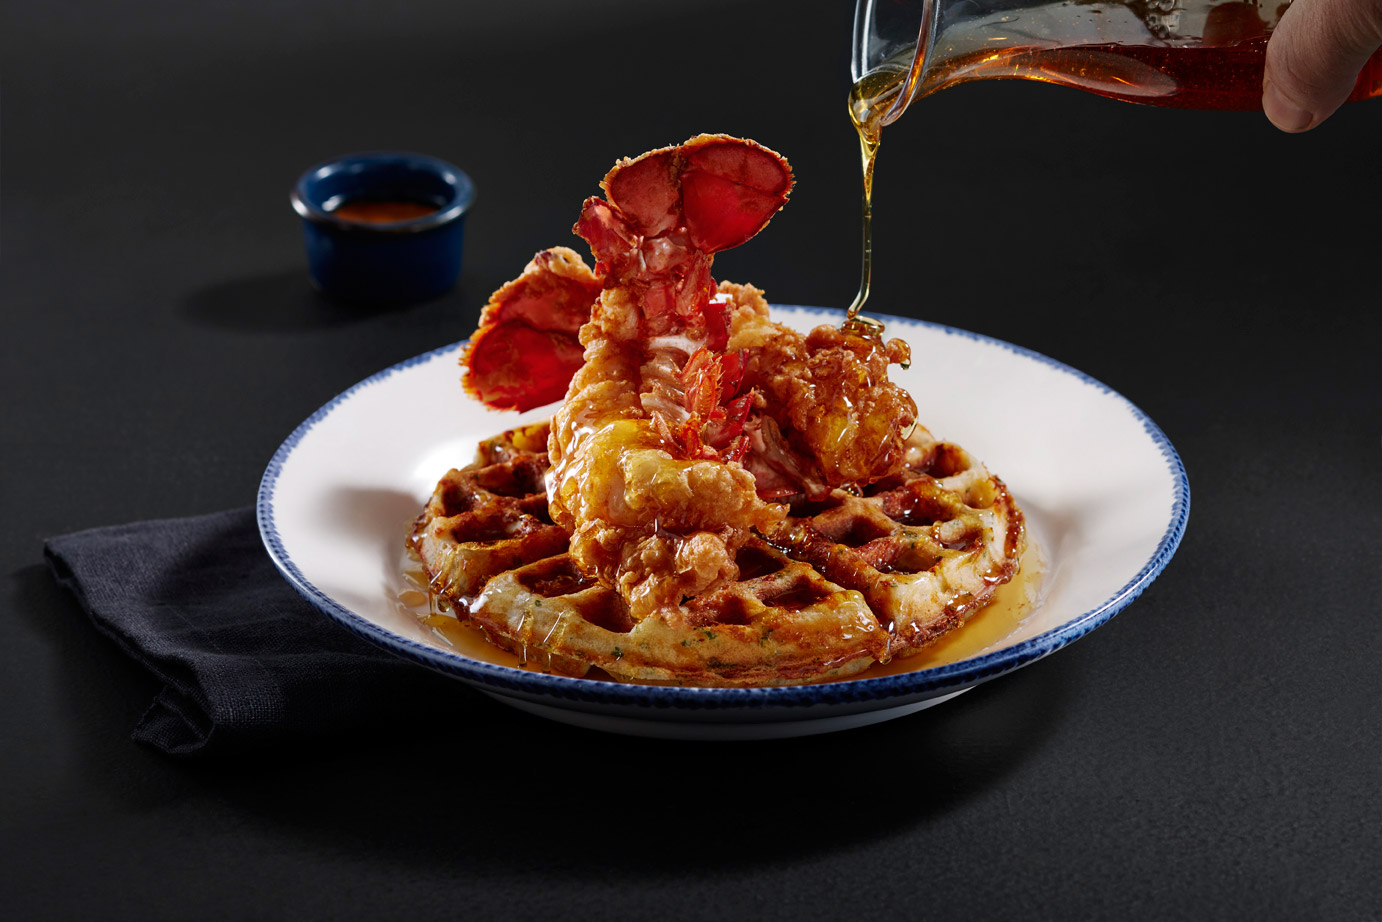 Red Lobster Announces Lobster and Waffles Made with Their Cheddar Bay Biscuits Batter